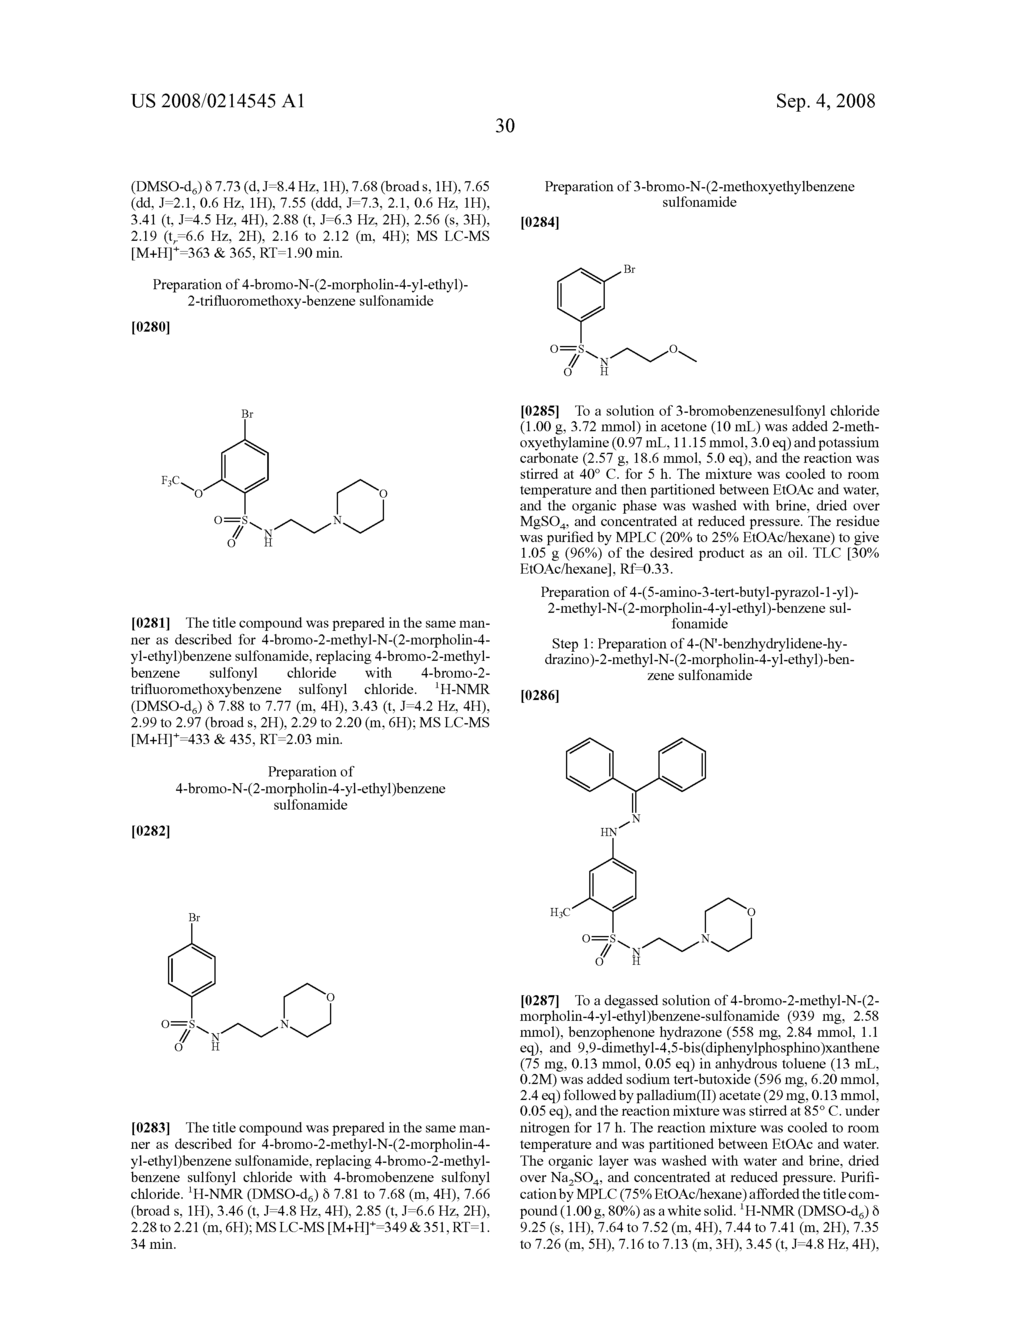 Substituted Pyrazolyl Urea Derivatives Useful in the Treatment of Cancer - diagram, schematic, and image 31